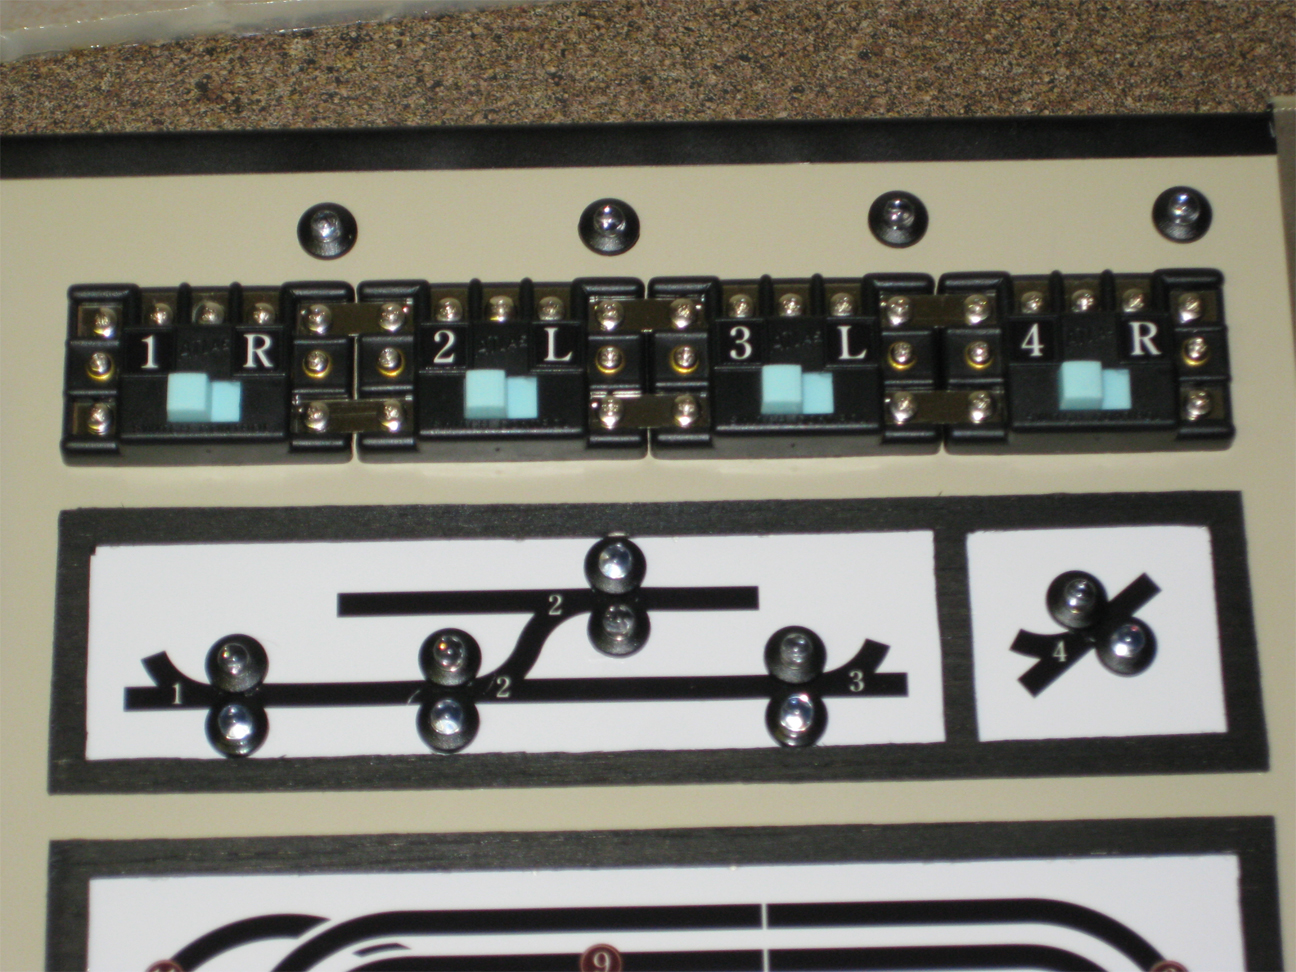 Control panel with Atlas switches and homemade letter labels installed along with turnout position LED indicator lights